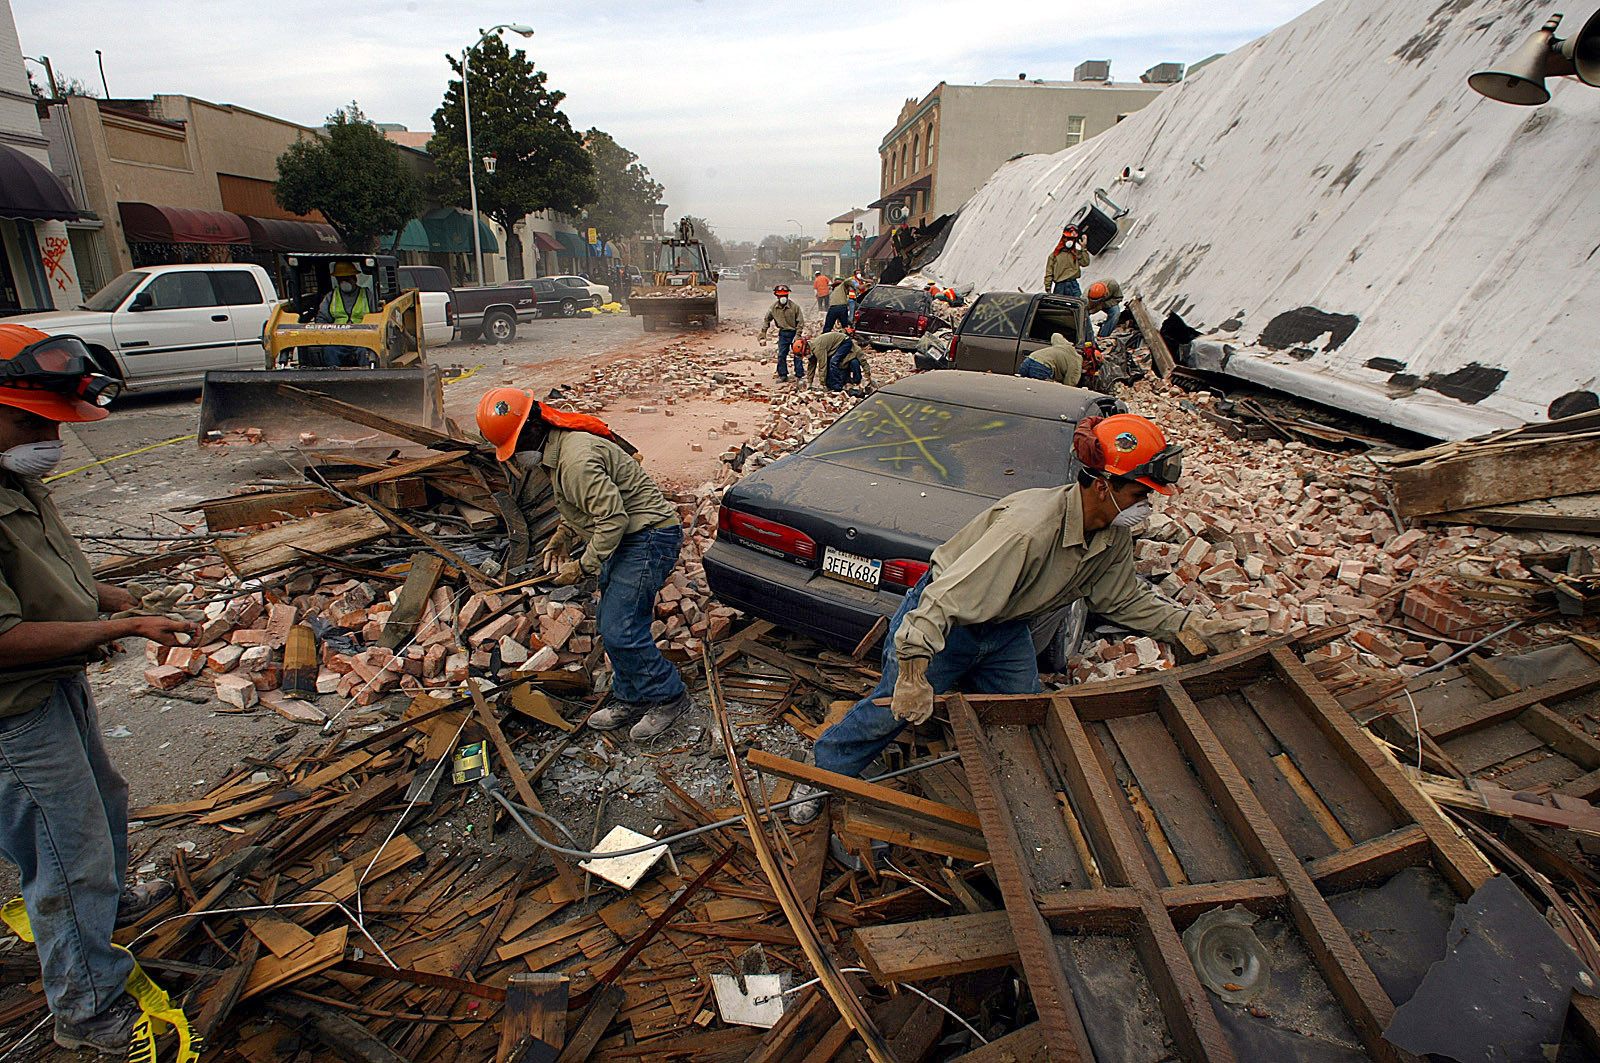 Rescue workers sift through the debris of an unretrofitted brick building in the wake of the 2003 Paso Robles earthquake. Two women who worked in the building died as they tried to flee.